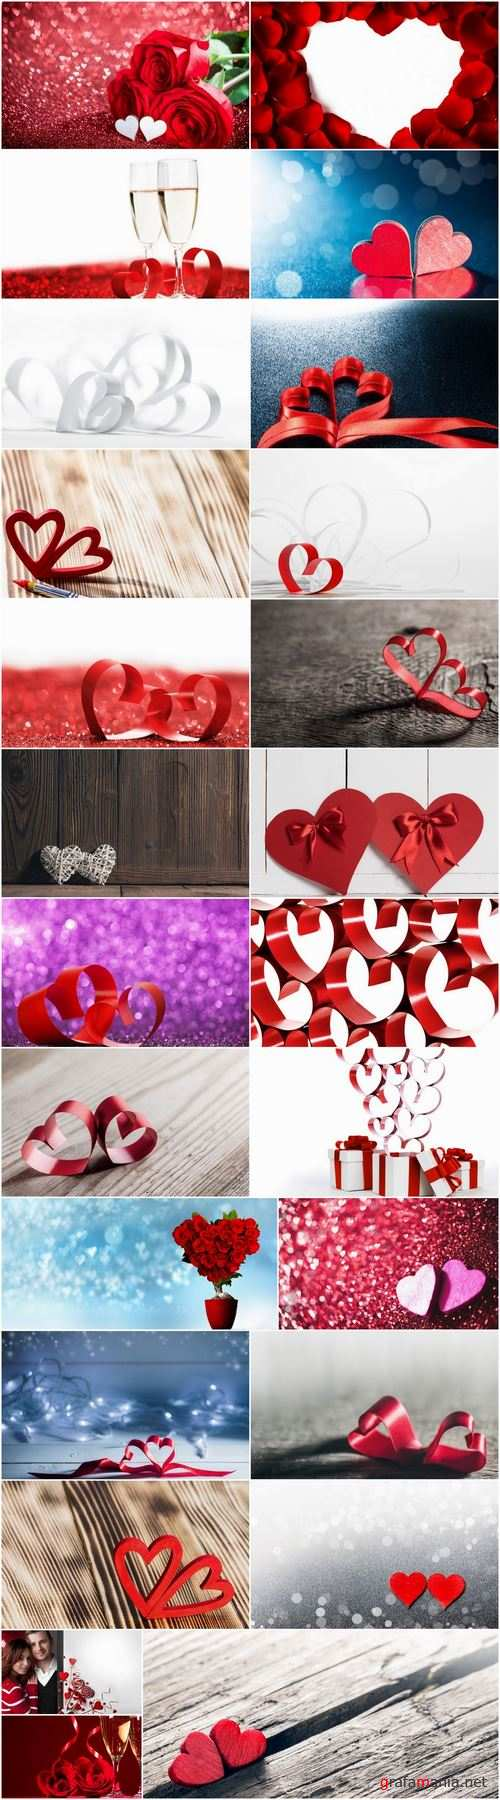 Valentines Day heart decoration ribbon red paint 25 HQ Jpeg